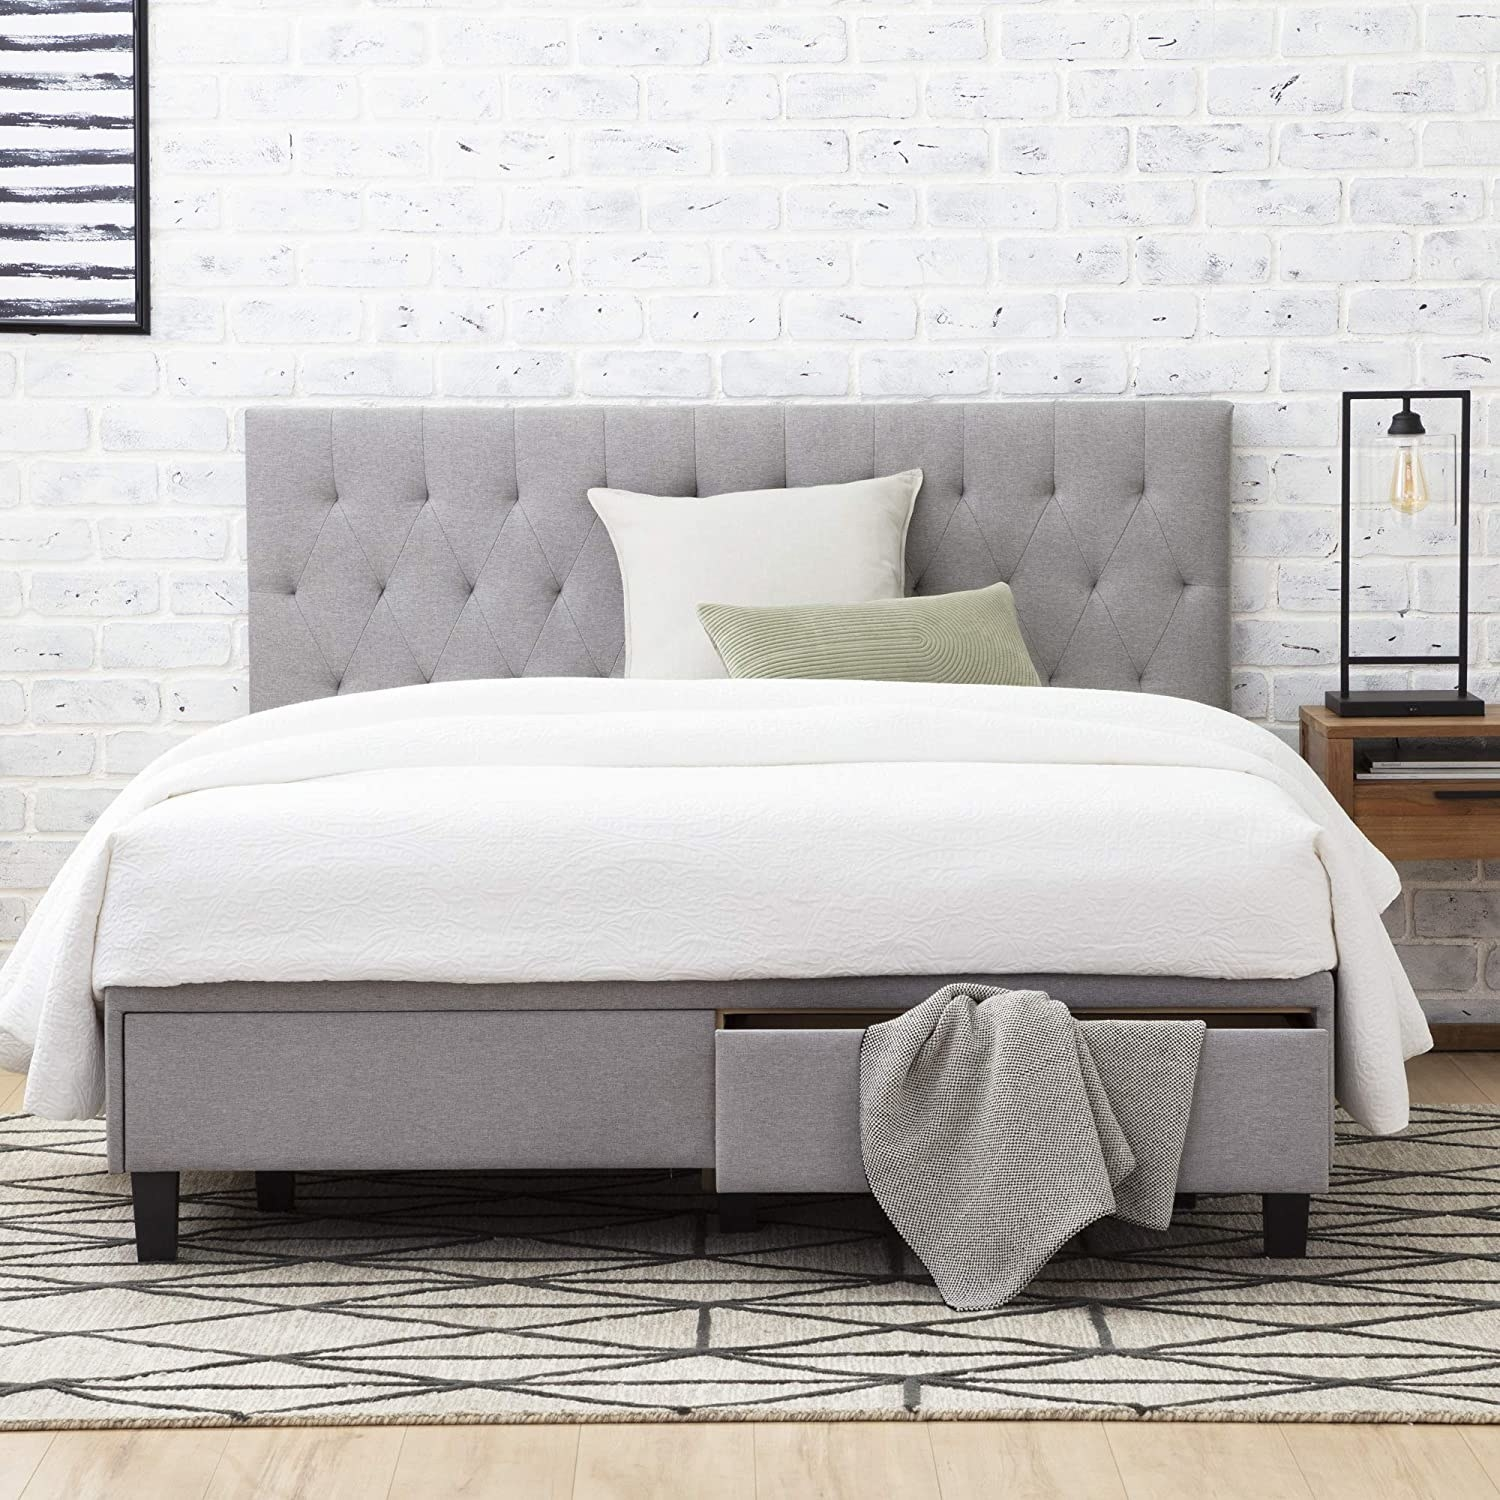 A simple gray fabric-covered frame with a tufted headboard, short feet, and two storage drawers at the foot of the bed